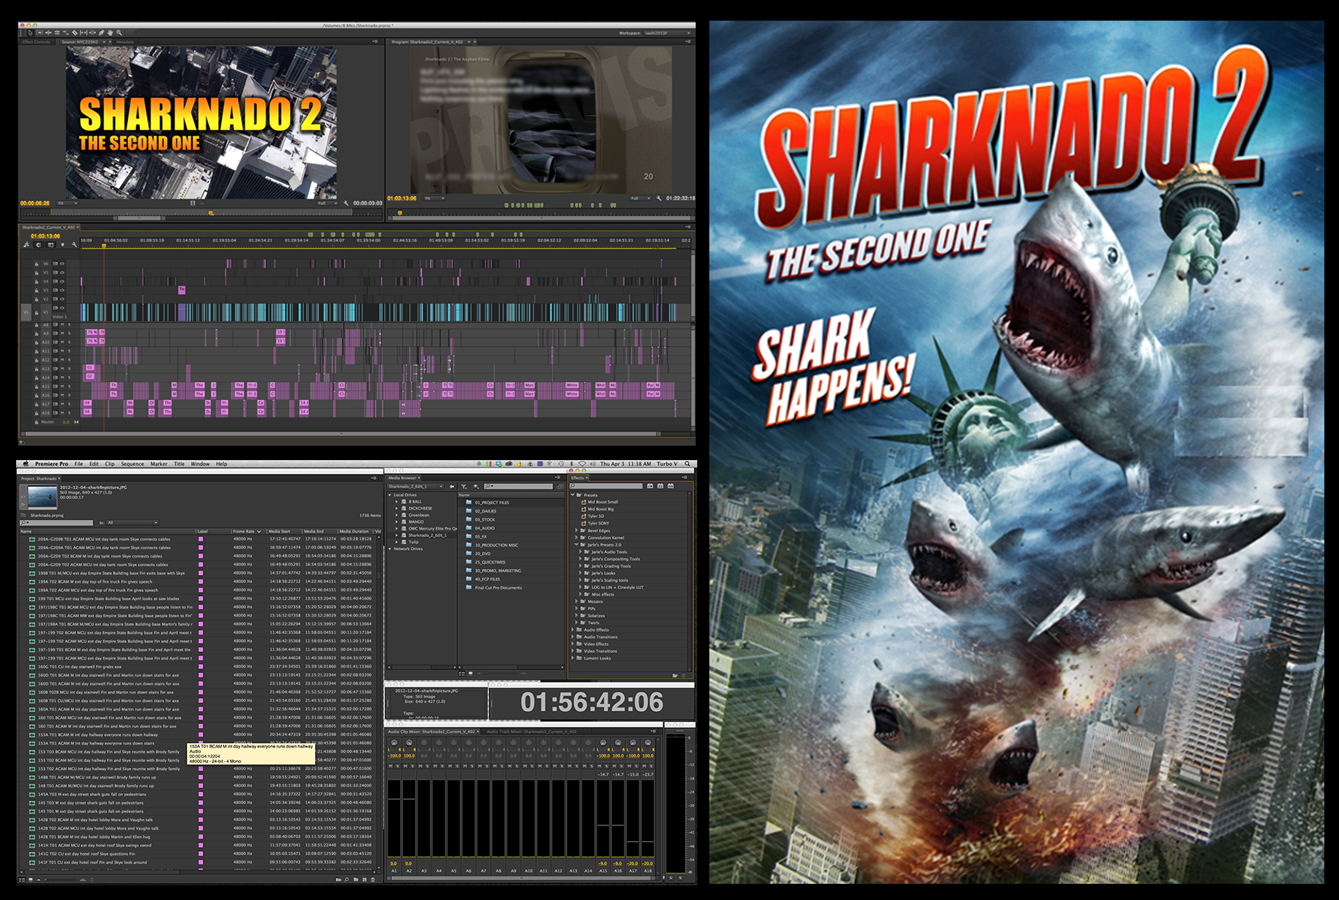 Sharknado 2 timeline in Adobe Premiere Pro